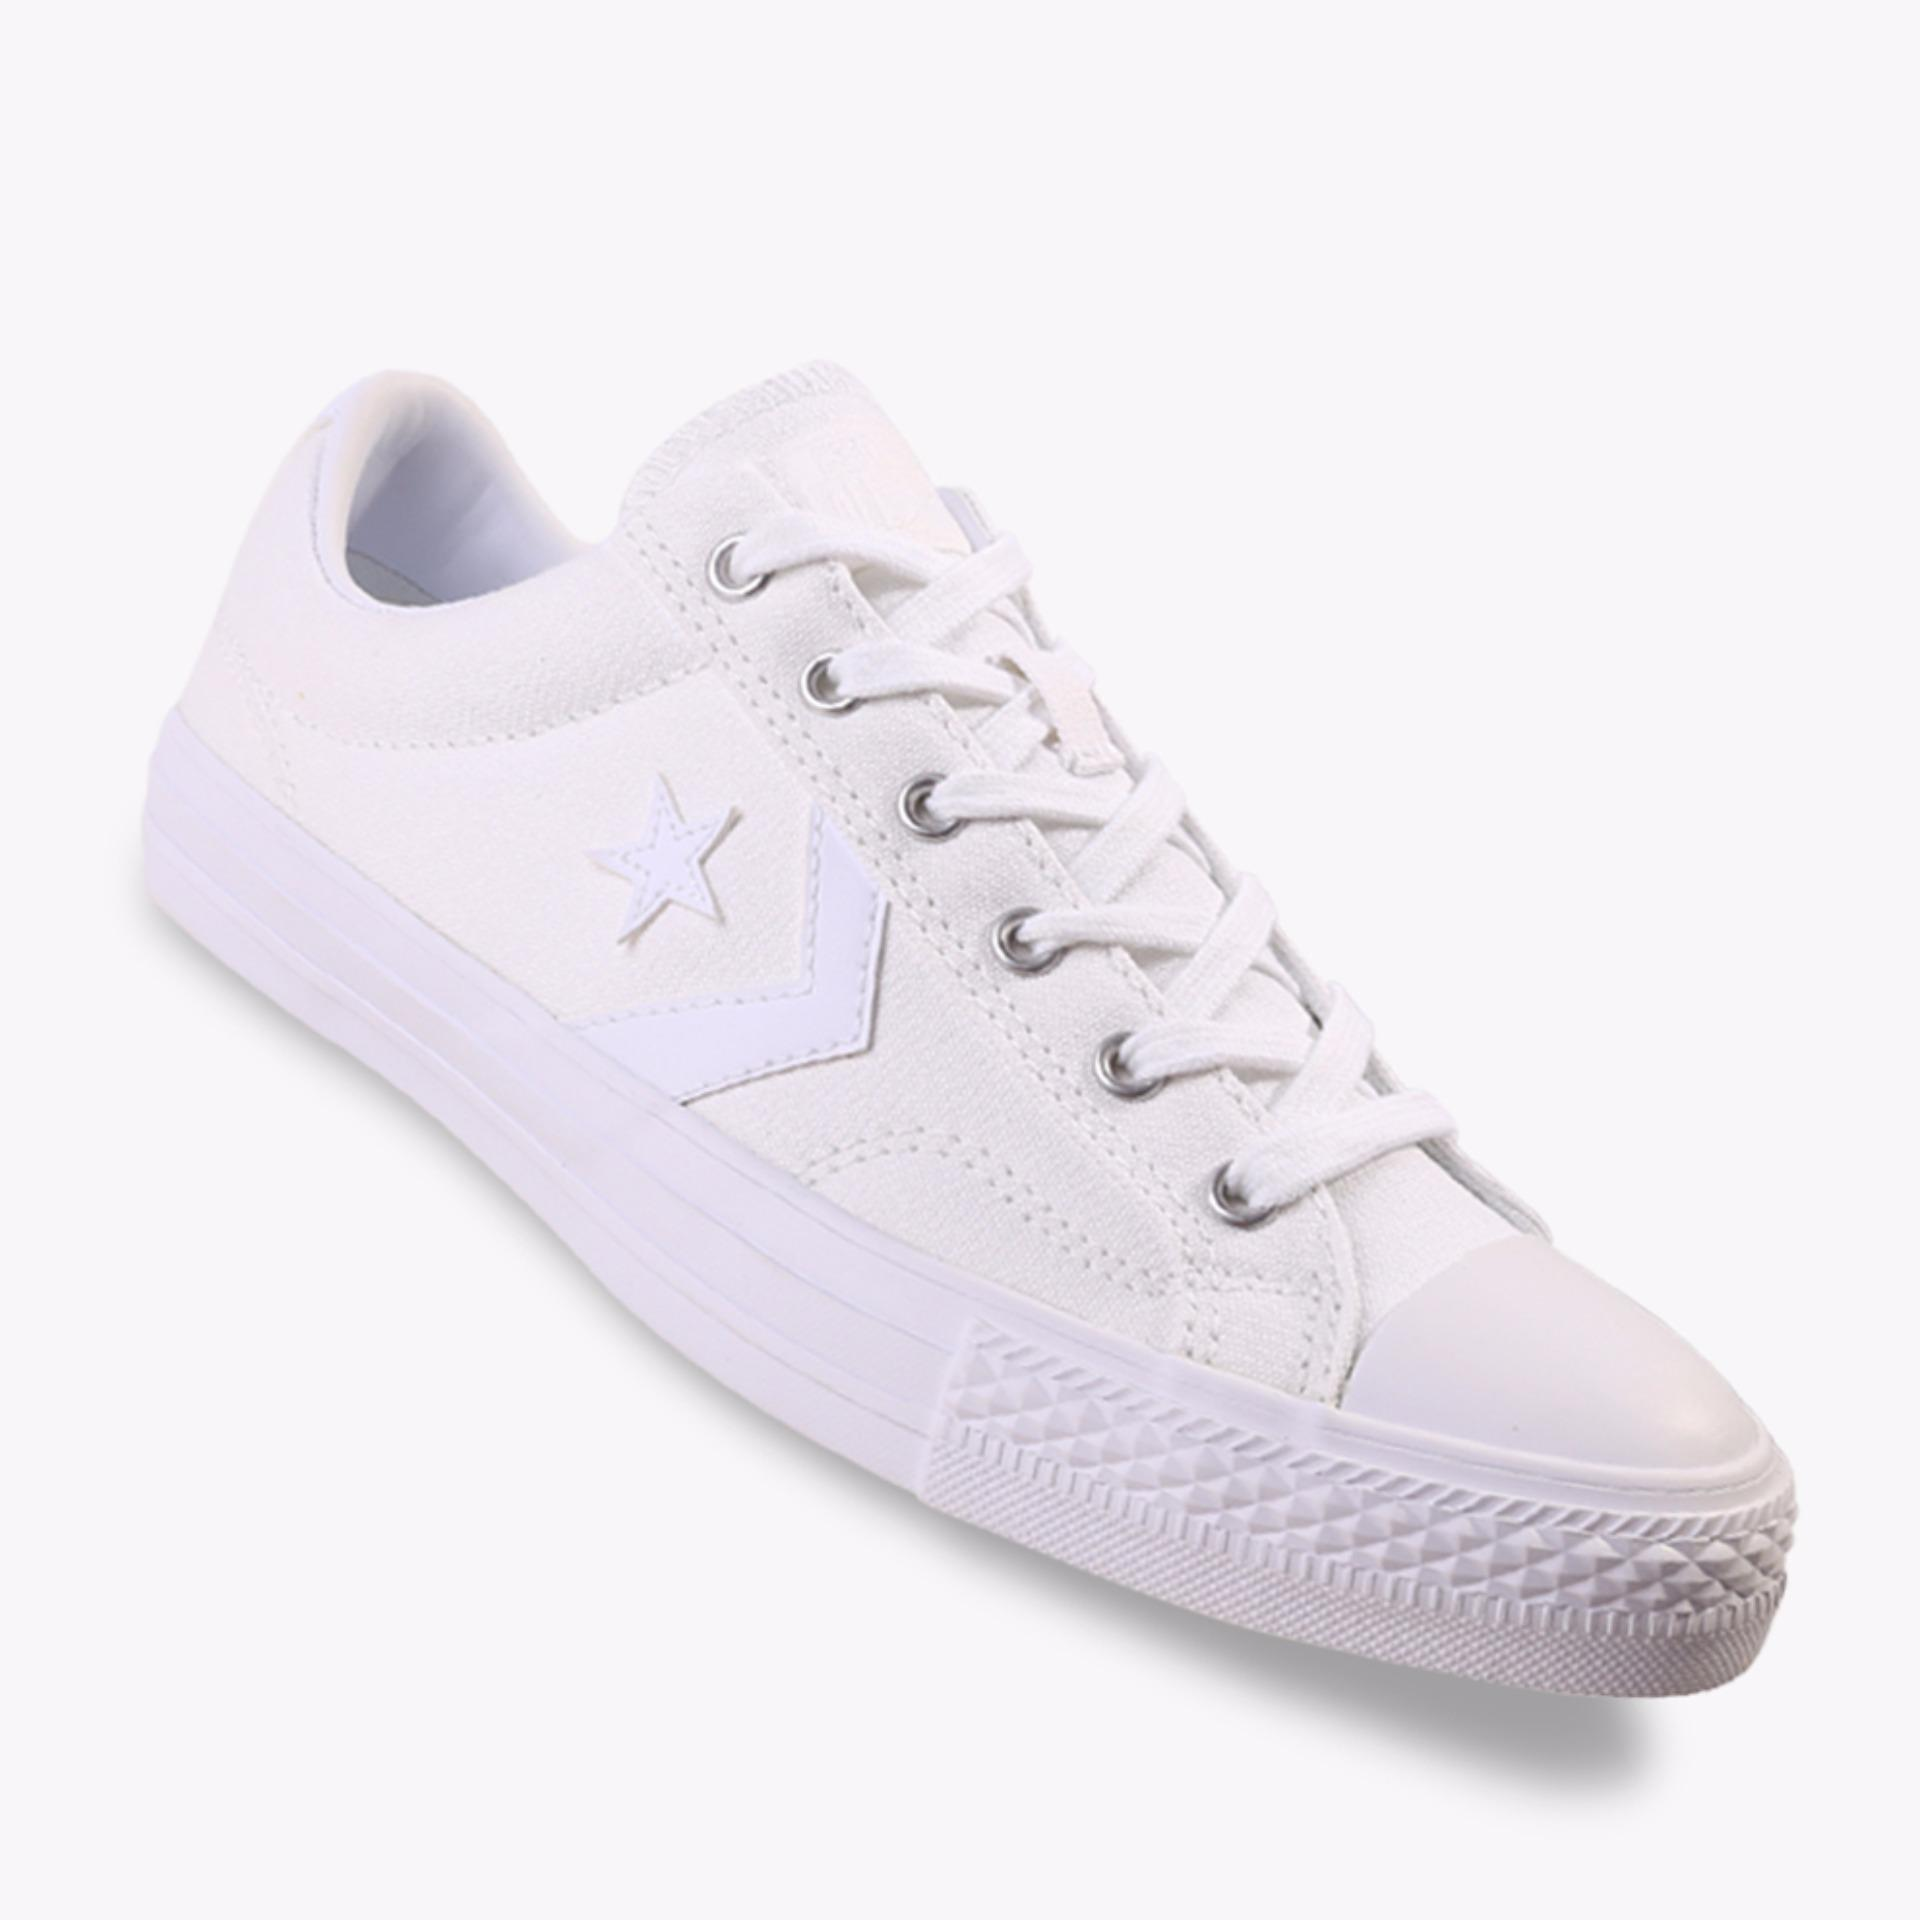 Jual Converse Star Player Ox Men S Sneakers Shoes Putih Converse Di Indonesia